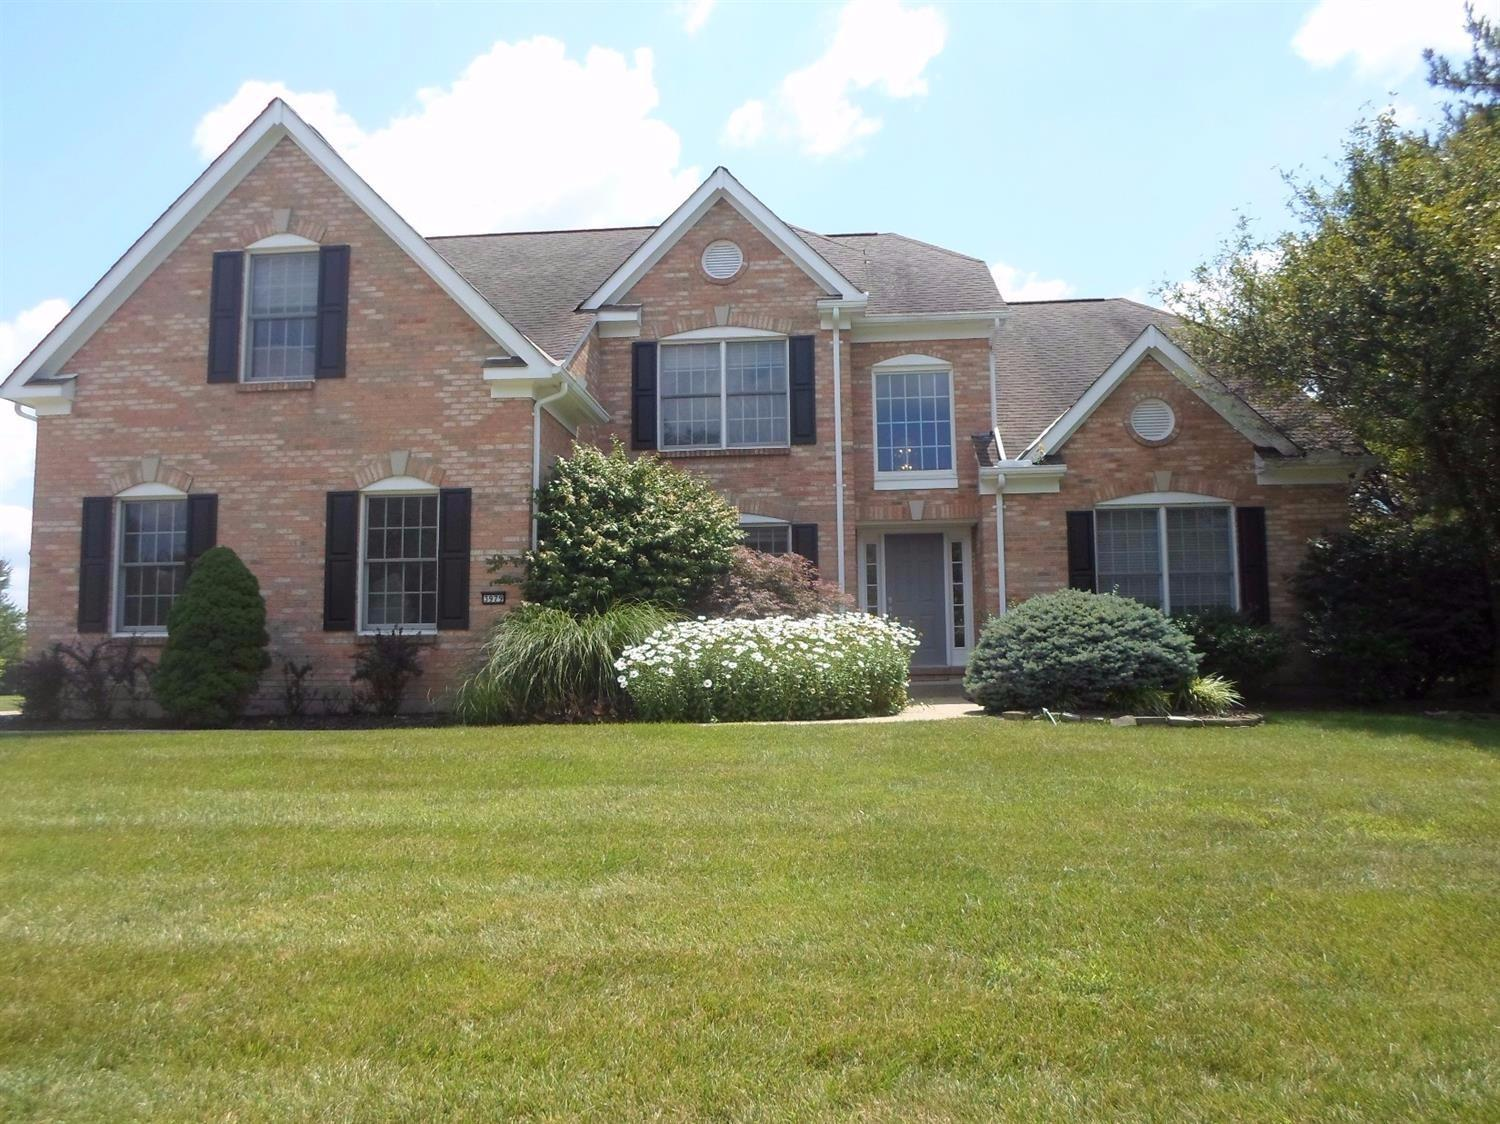 3979 St Andrews Court, Mason, OH 45040